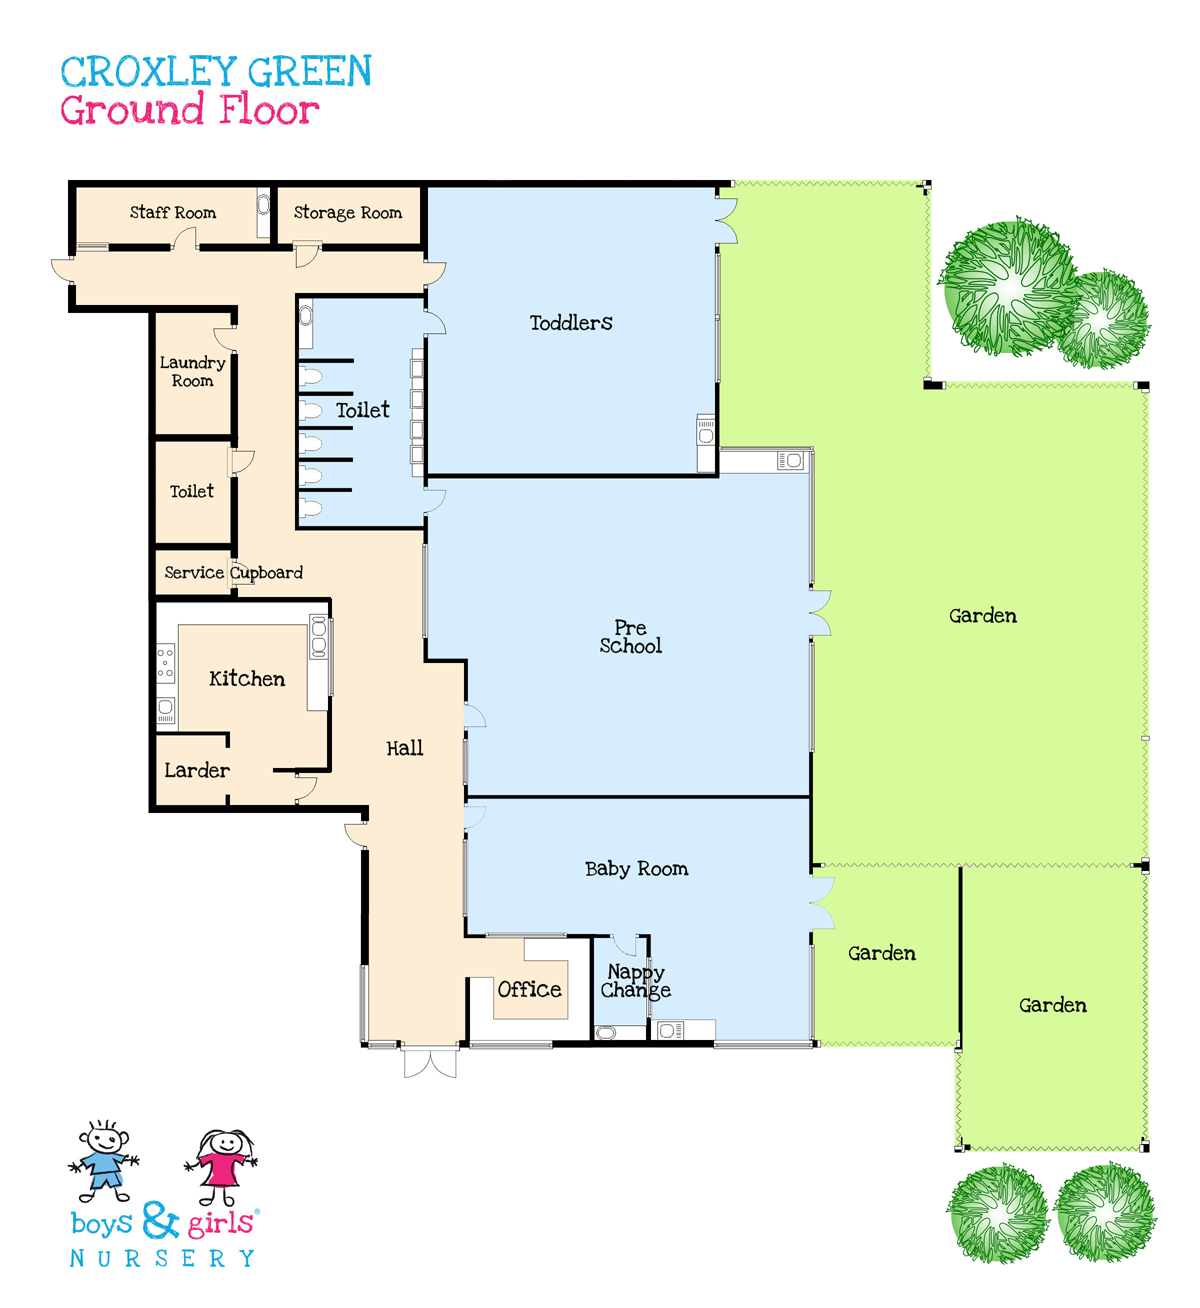 Home Design Layout Plan Pre School Amp Nursery In Croxley Green Boys Amp Girls Nursery